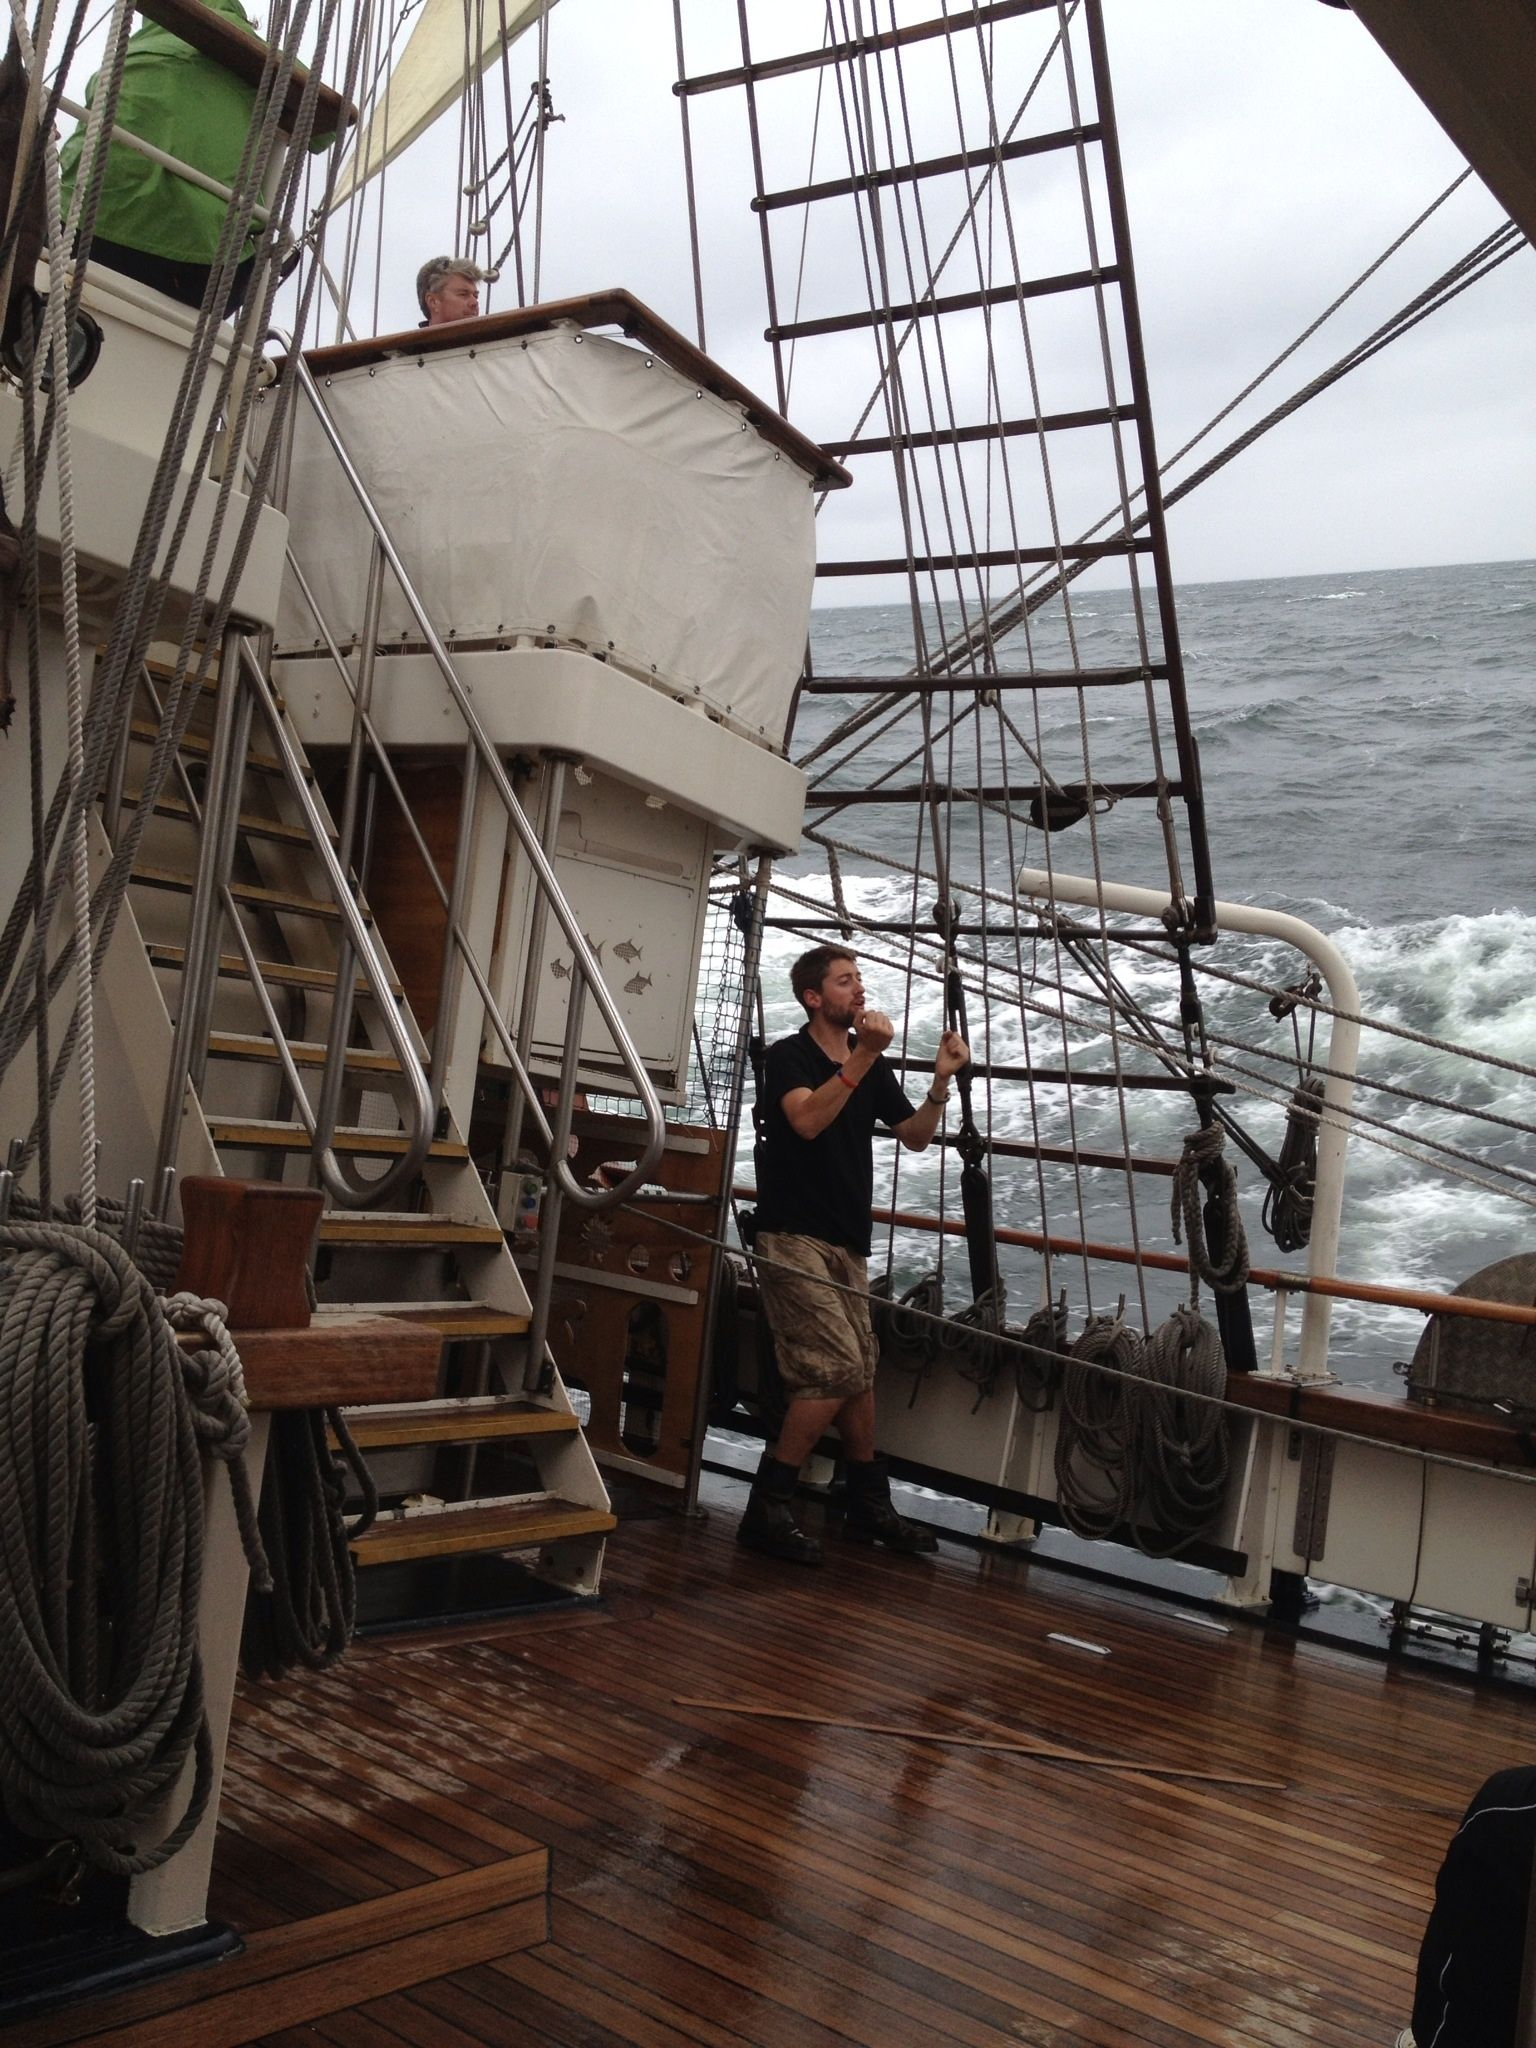 SV Tenacious under rough weather, drenching the Bosun. Tall Ships Races 2013